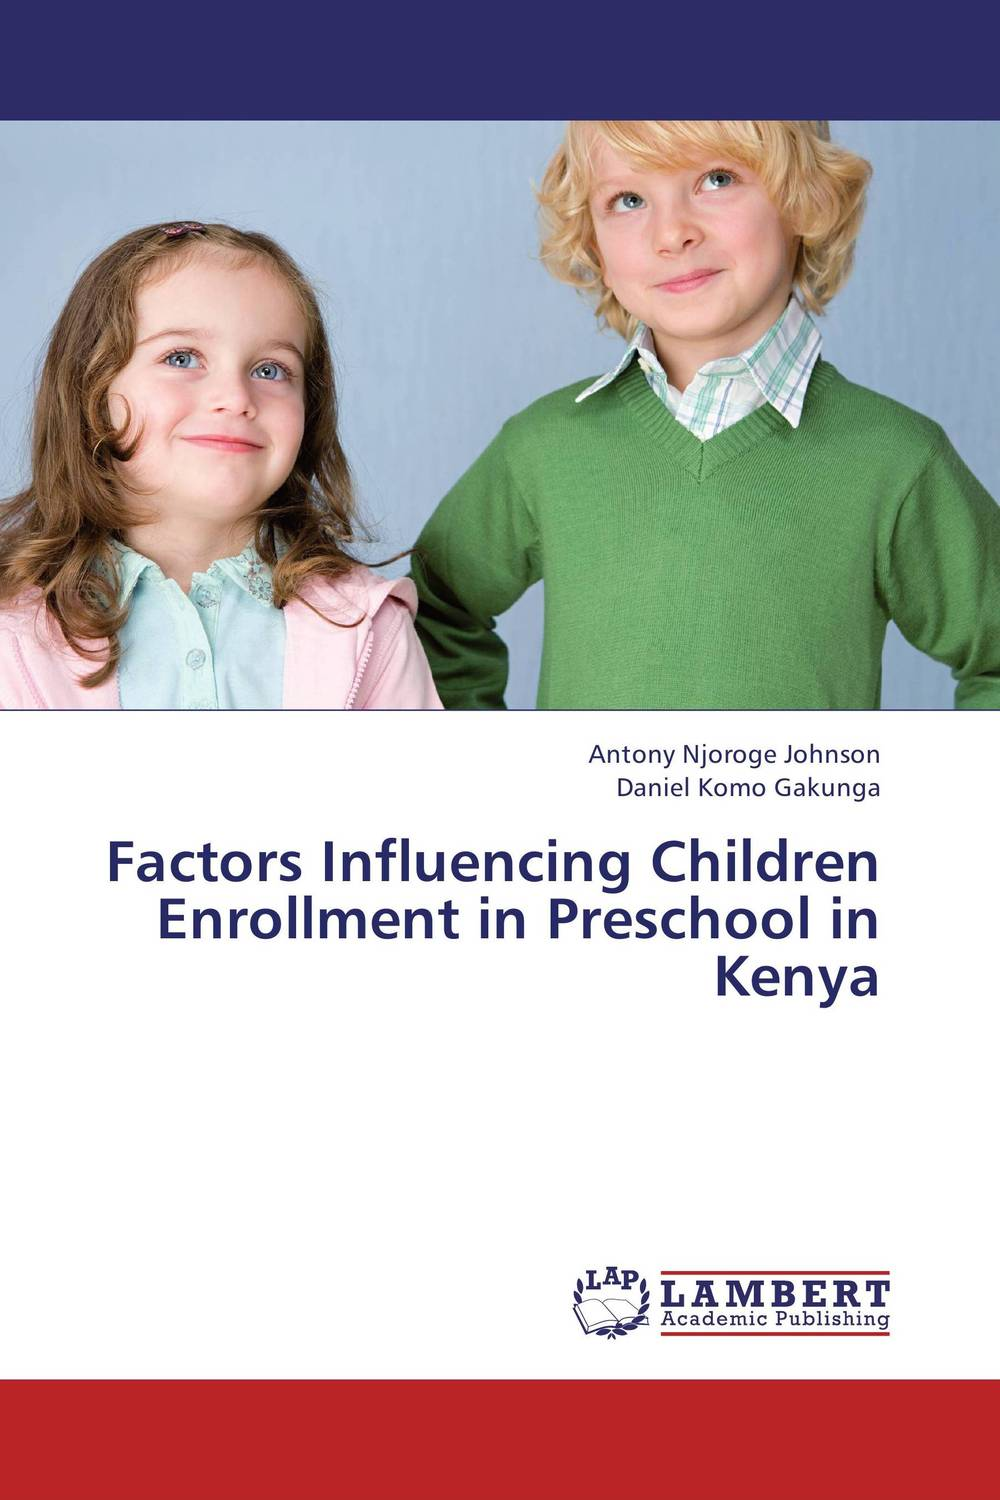 Factors Influencing Children Enrollment in Preschool in Kenya course enrollment decisions